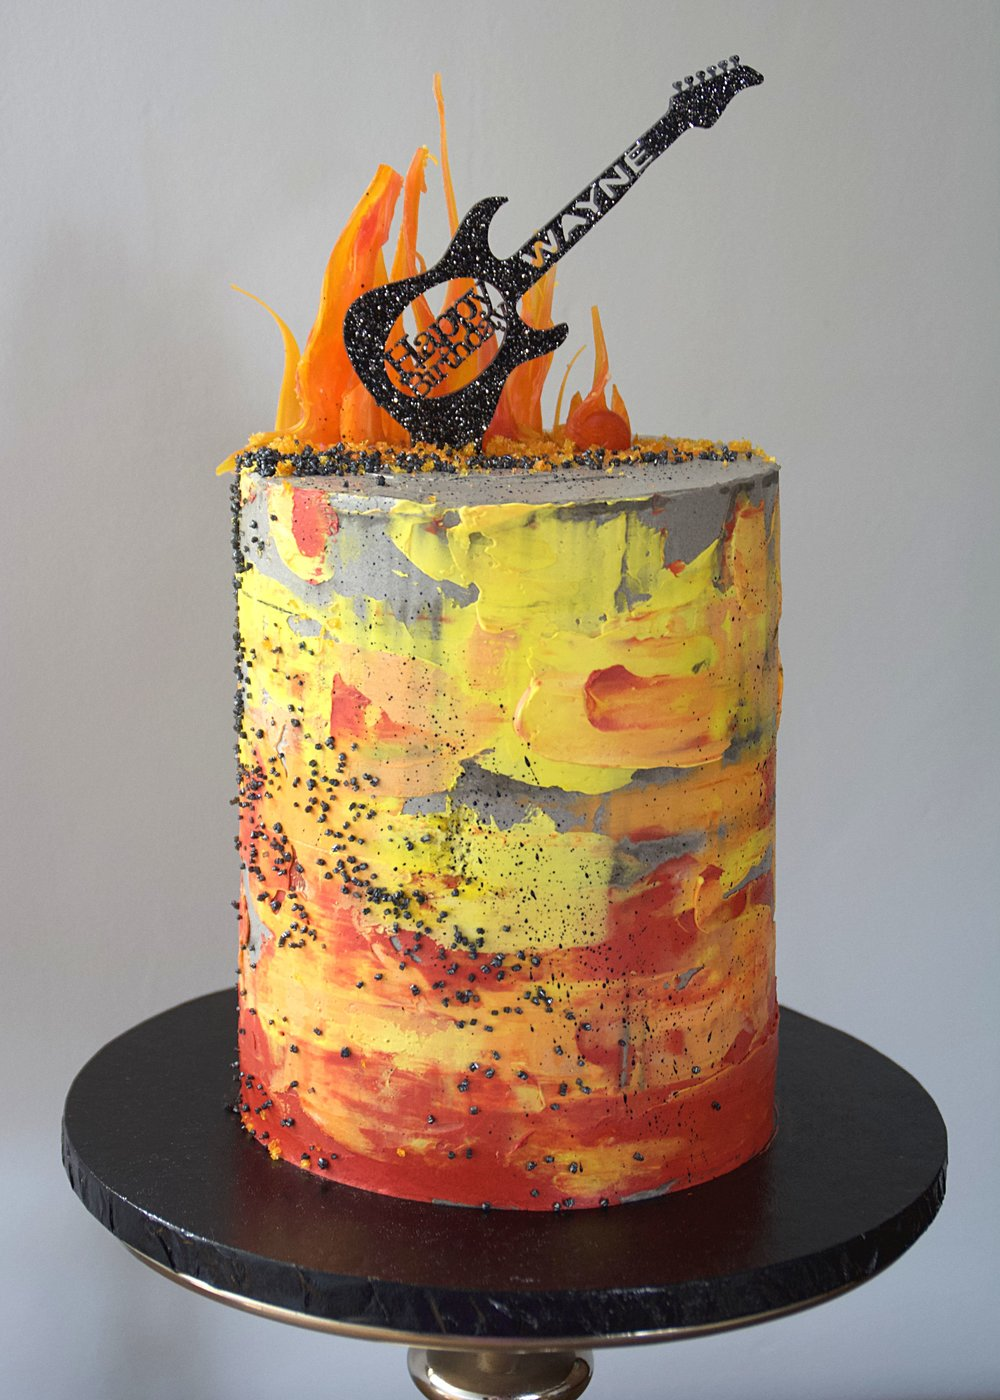 Fire and guitar themed birthday cake